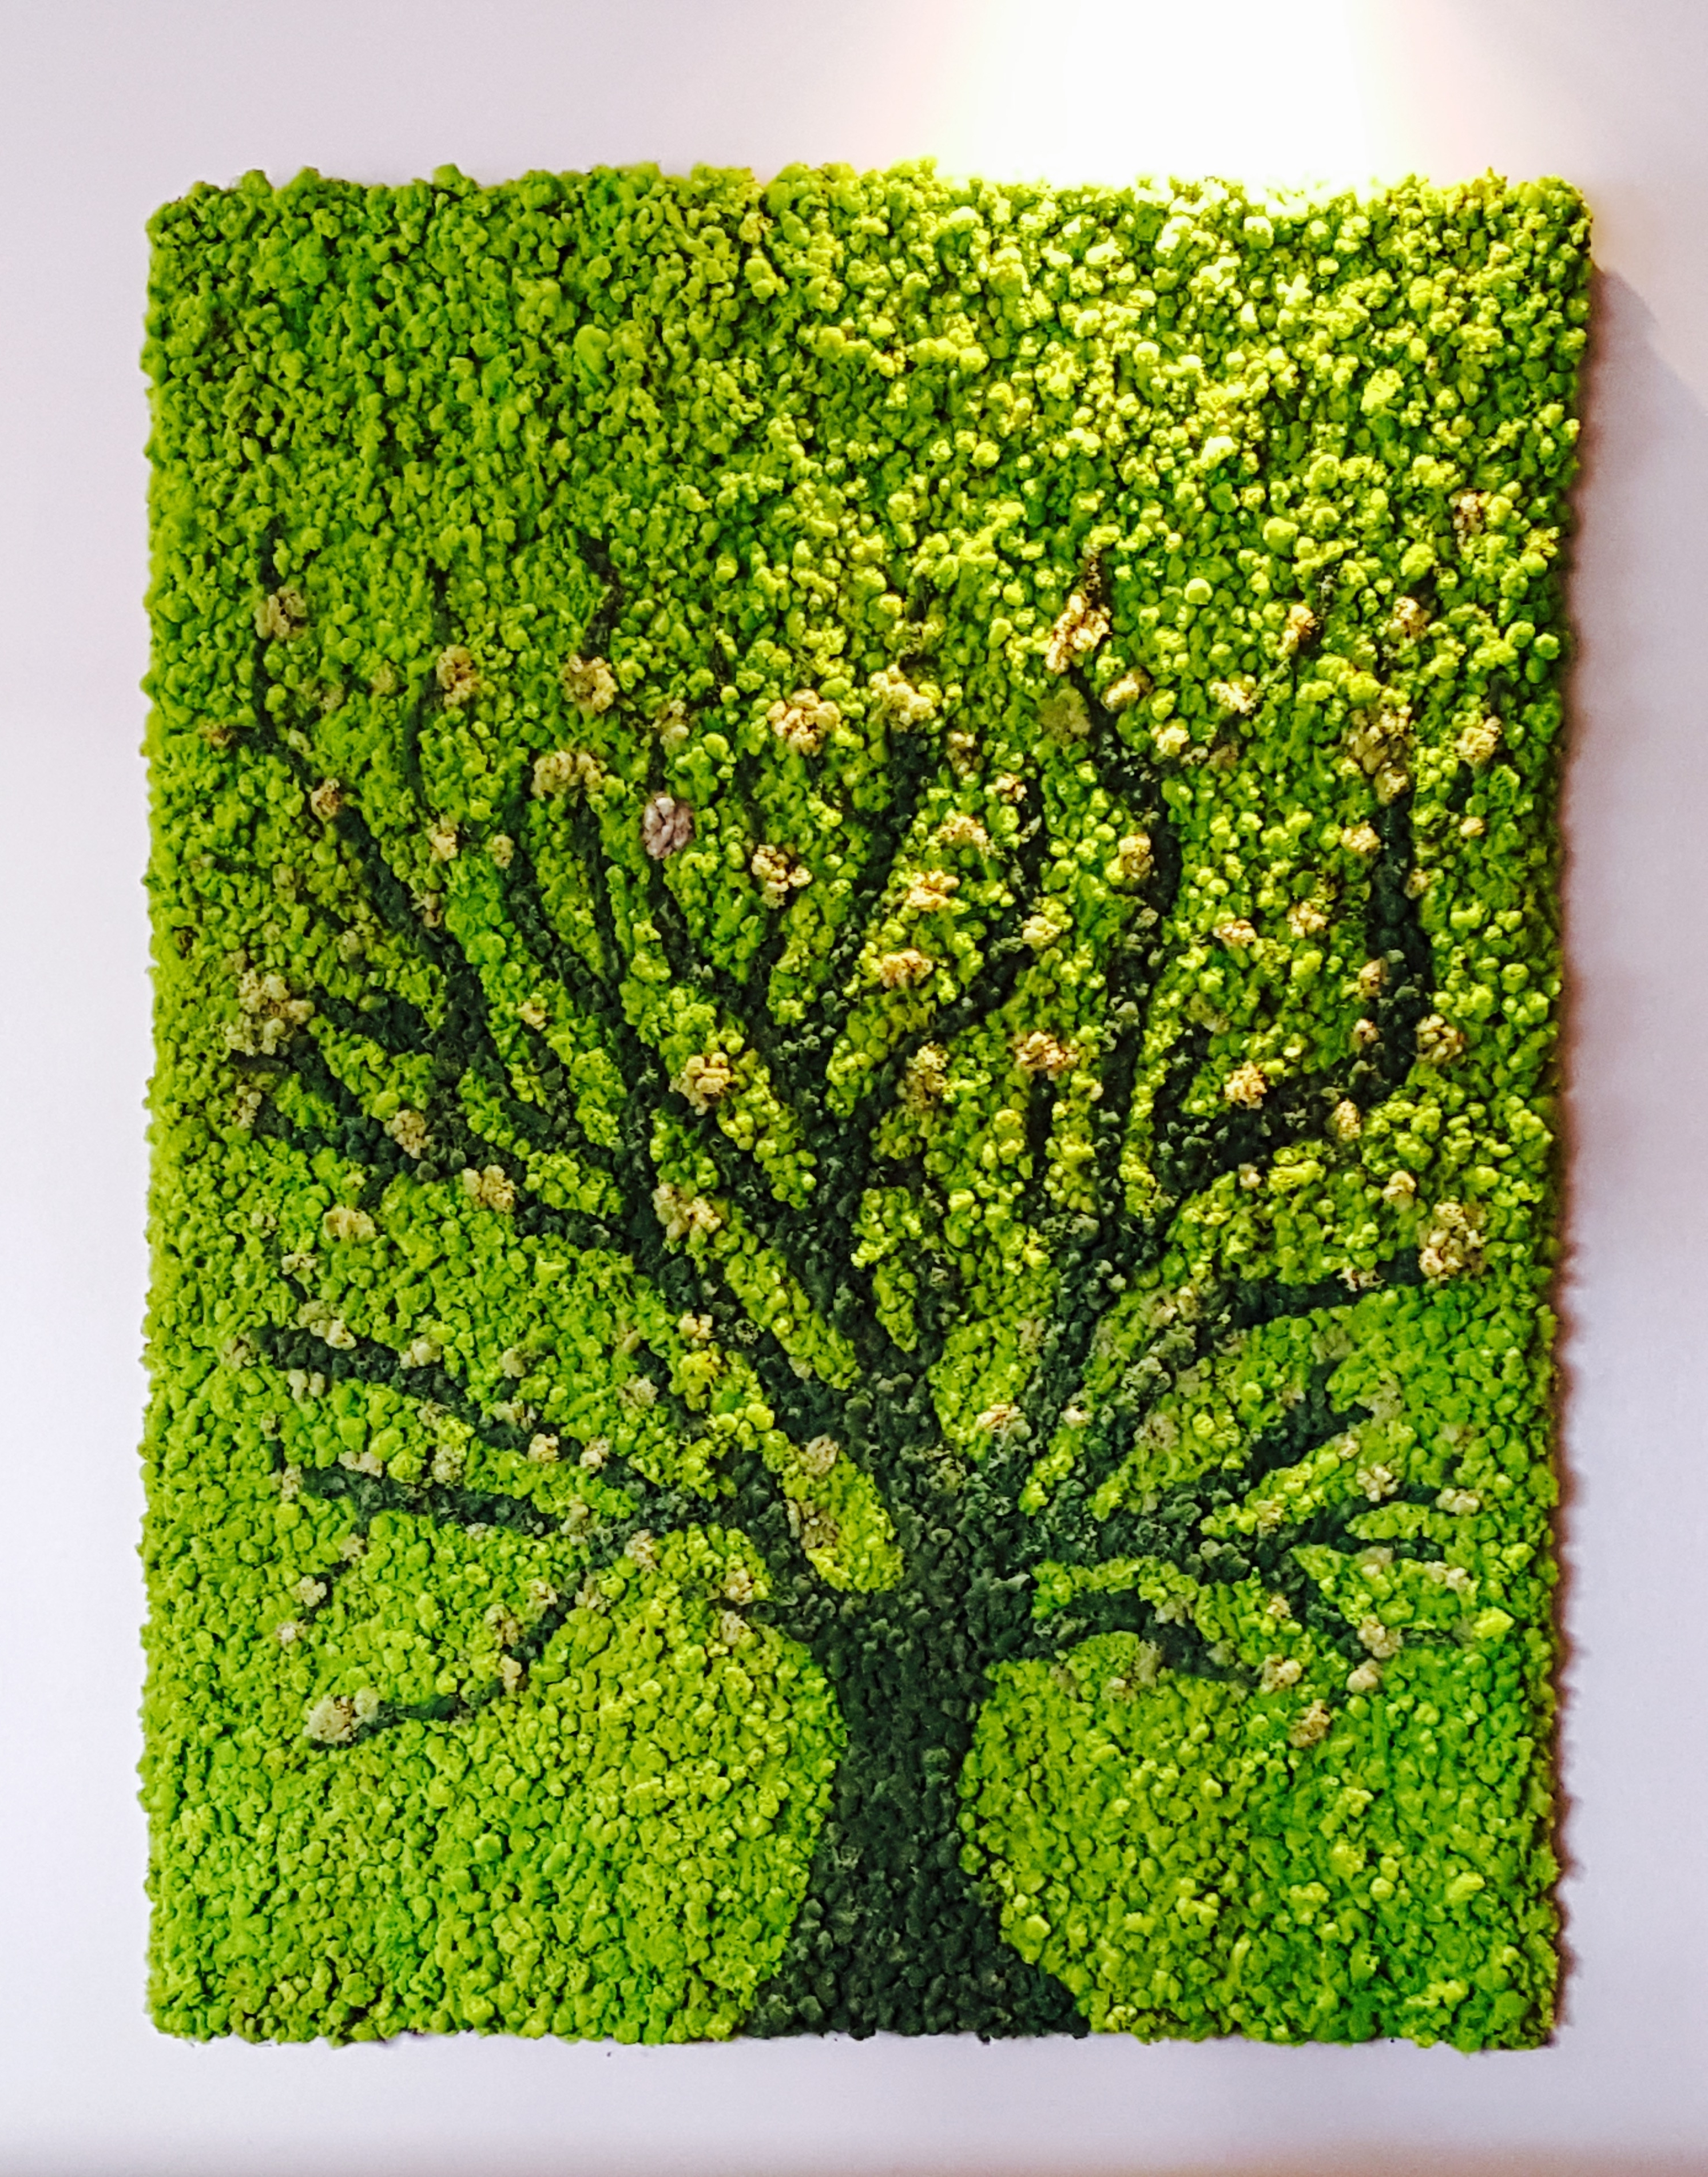 Greenery Office Interiors Intended For Well Liked Living Wall Art (Gallery 4 of 20)